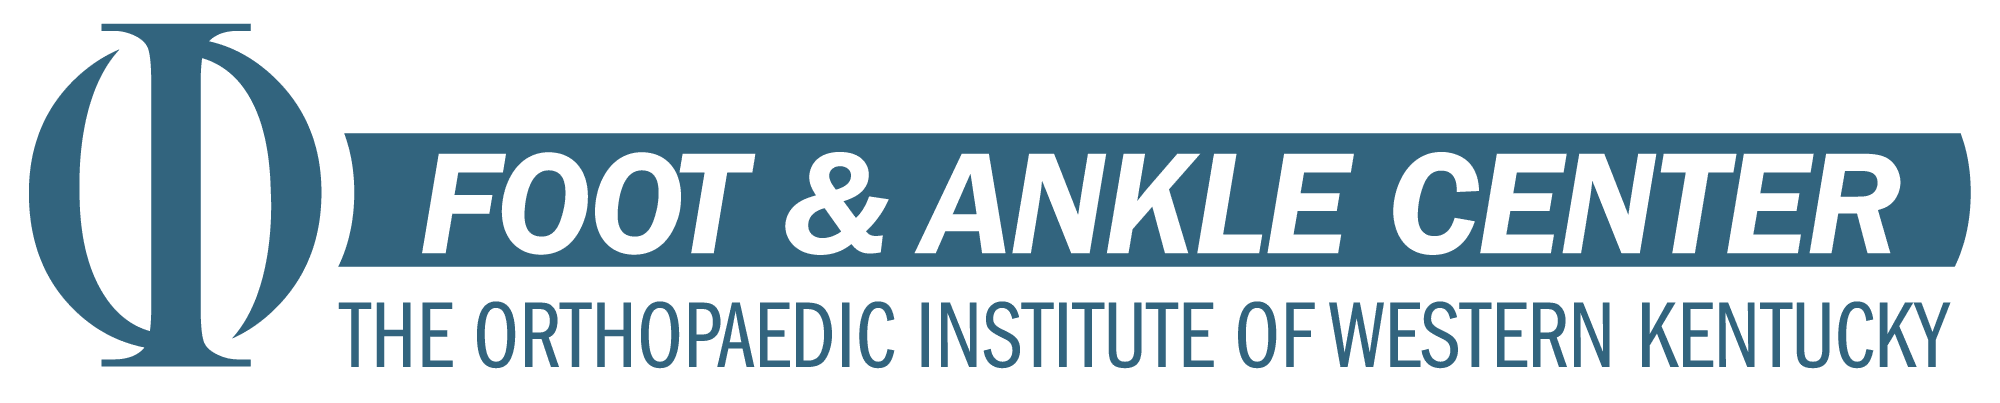 Orthopaedic Institute of Western Kentucky | Our Services | Foot & Ankle Center